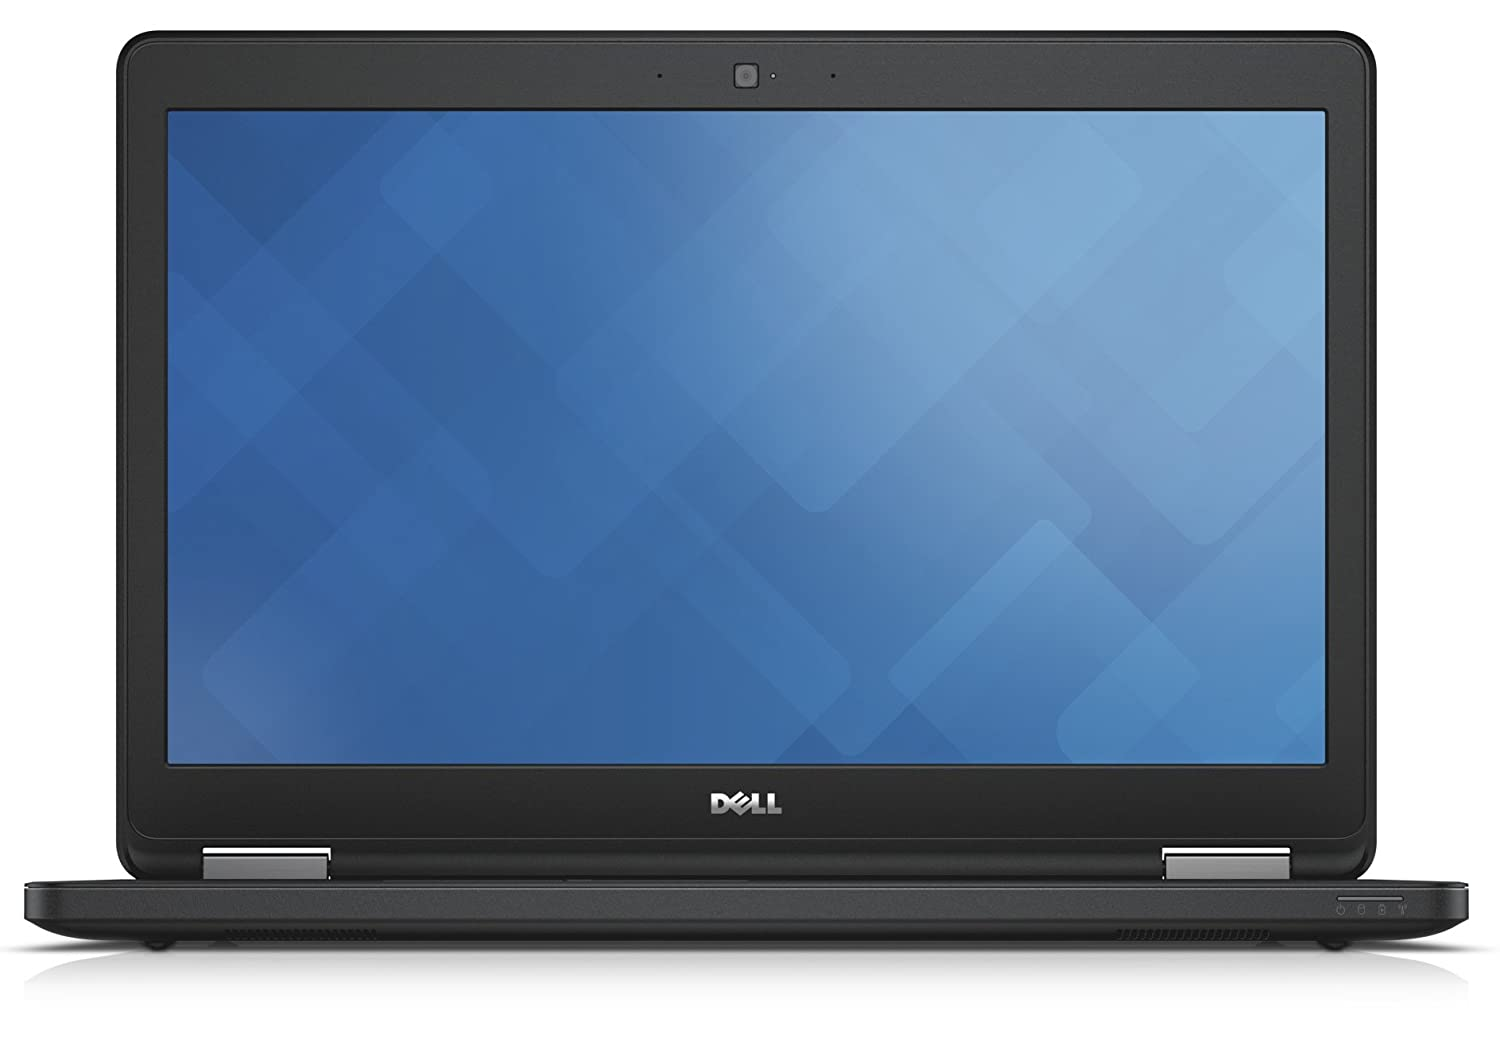 Dell Commercial LATE55503950BK3 15.6 E5550 i5 5300U 4GB 500GB by Dell   B00T0Z9APW